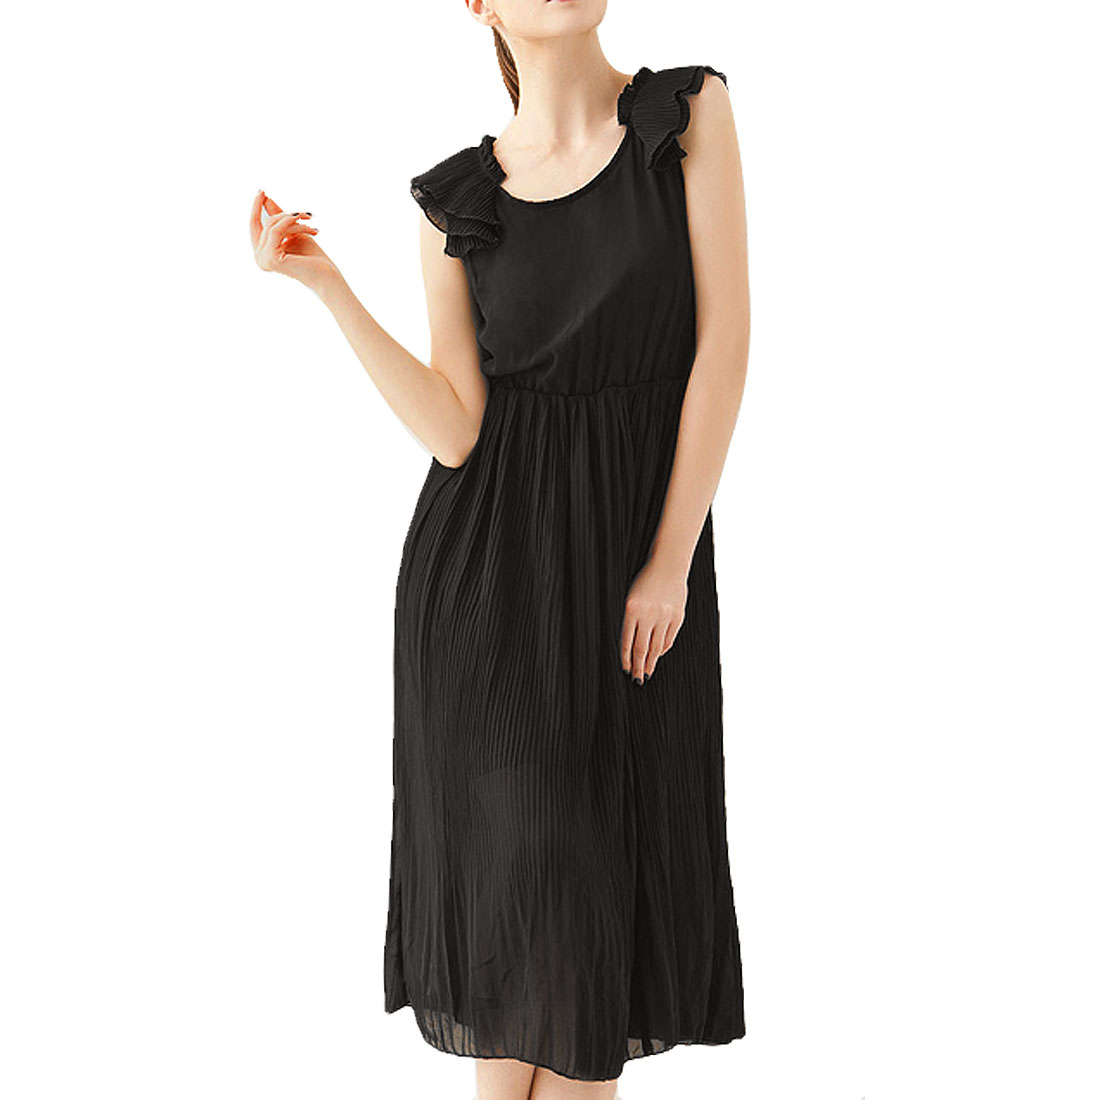 Women Flouncing Neckline Summer Lining Organ Pleated Tank Dress Black XS